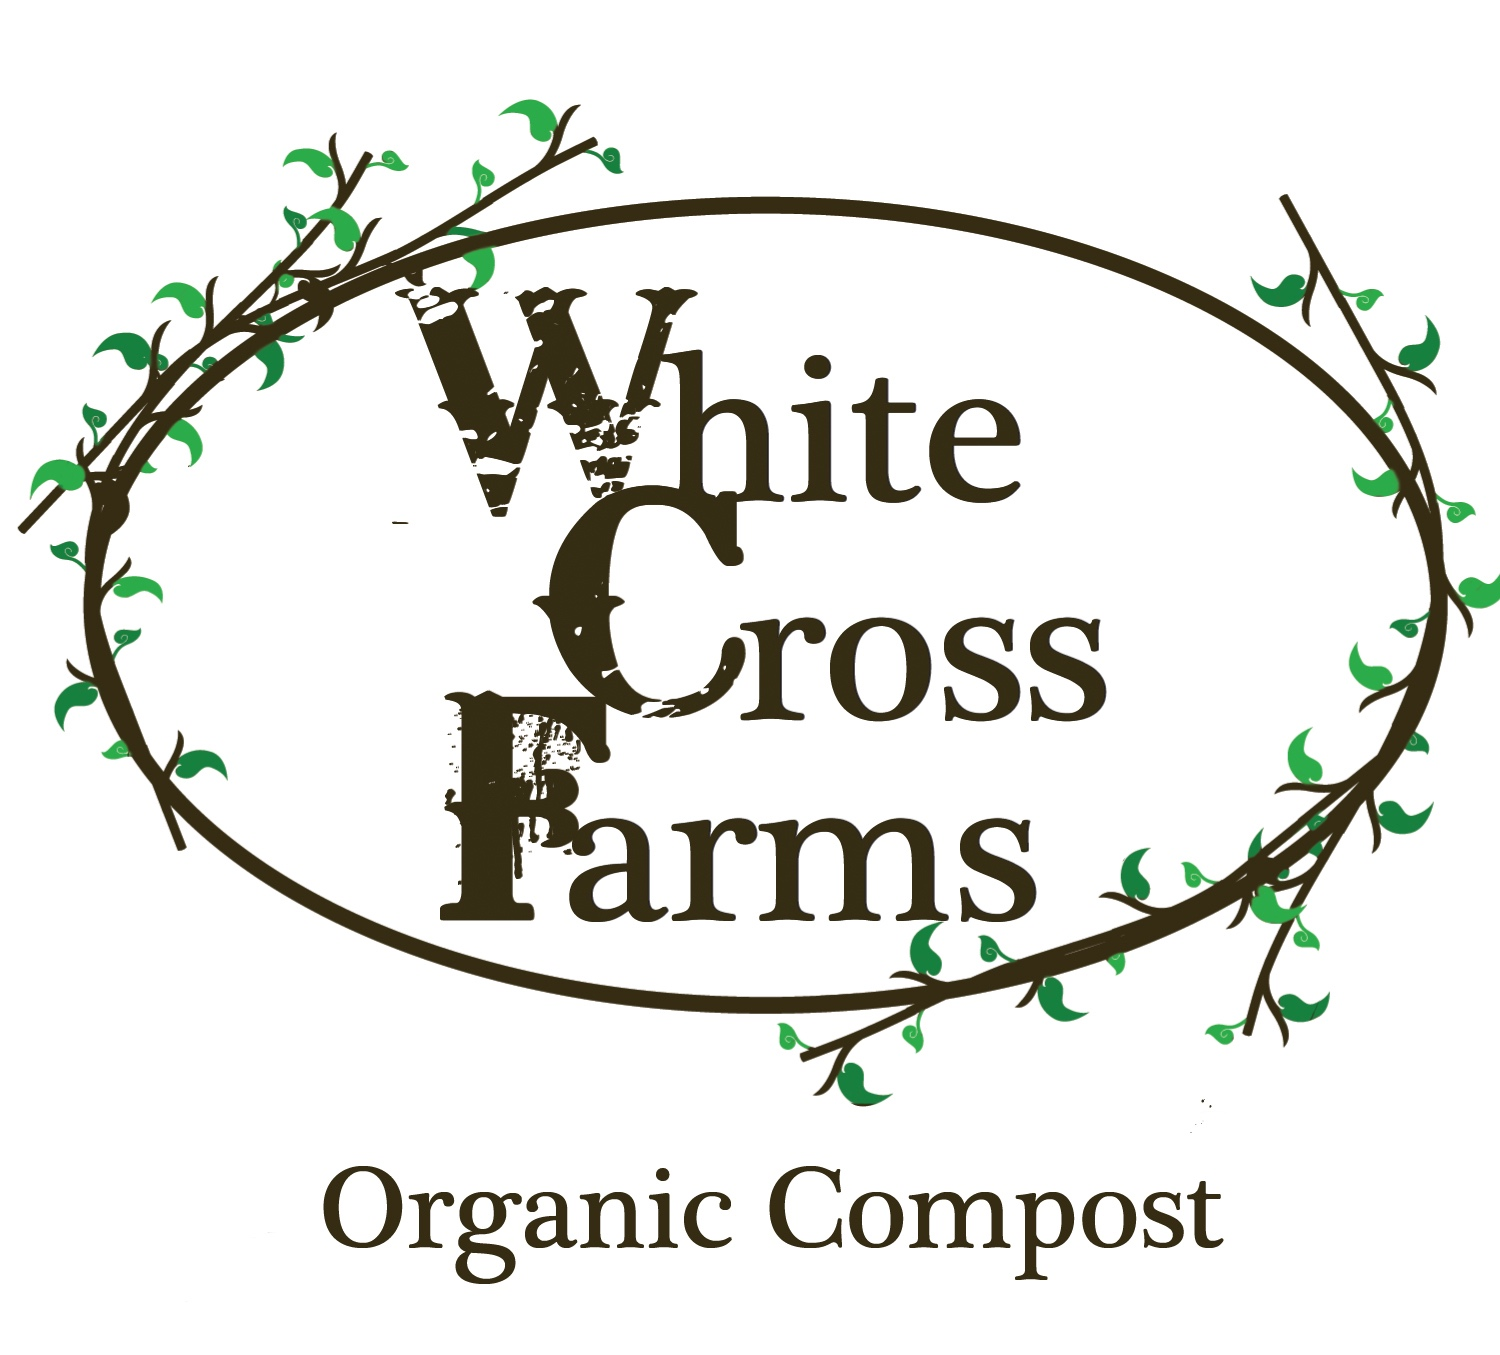 Our very own rich, nutritious organic compost. Expertly formulated to help grow healthy plants, flowers, and vegetables. - For use with edible or non-edible planting.